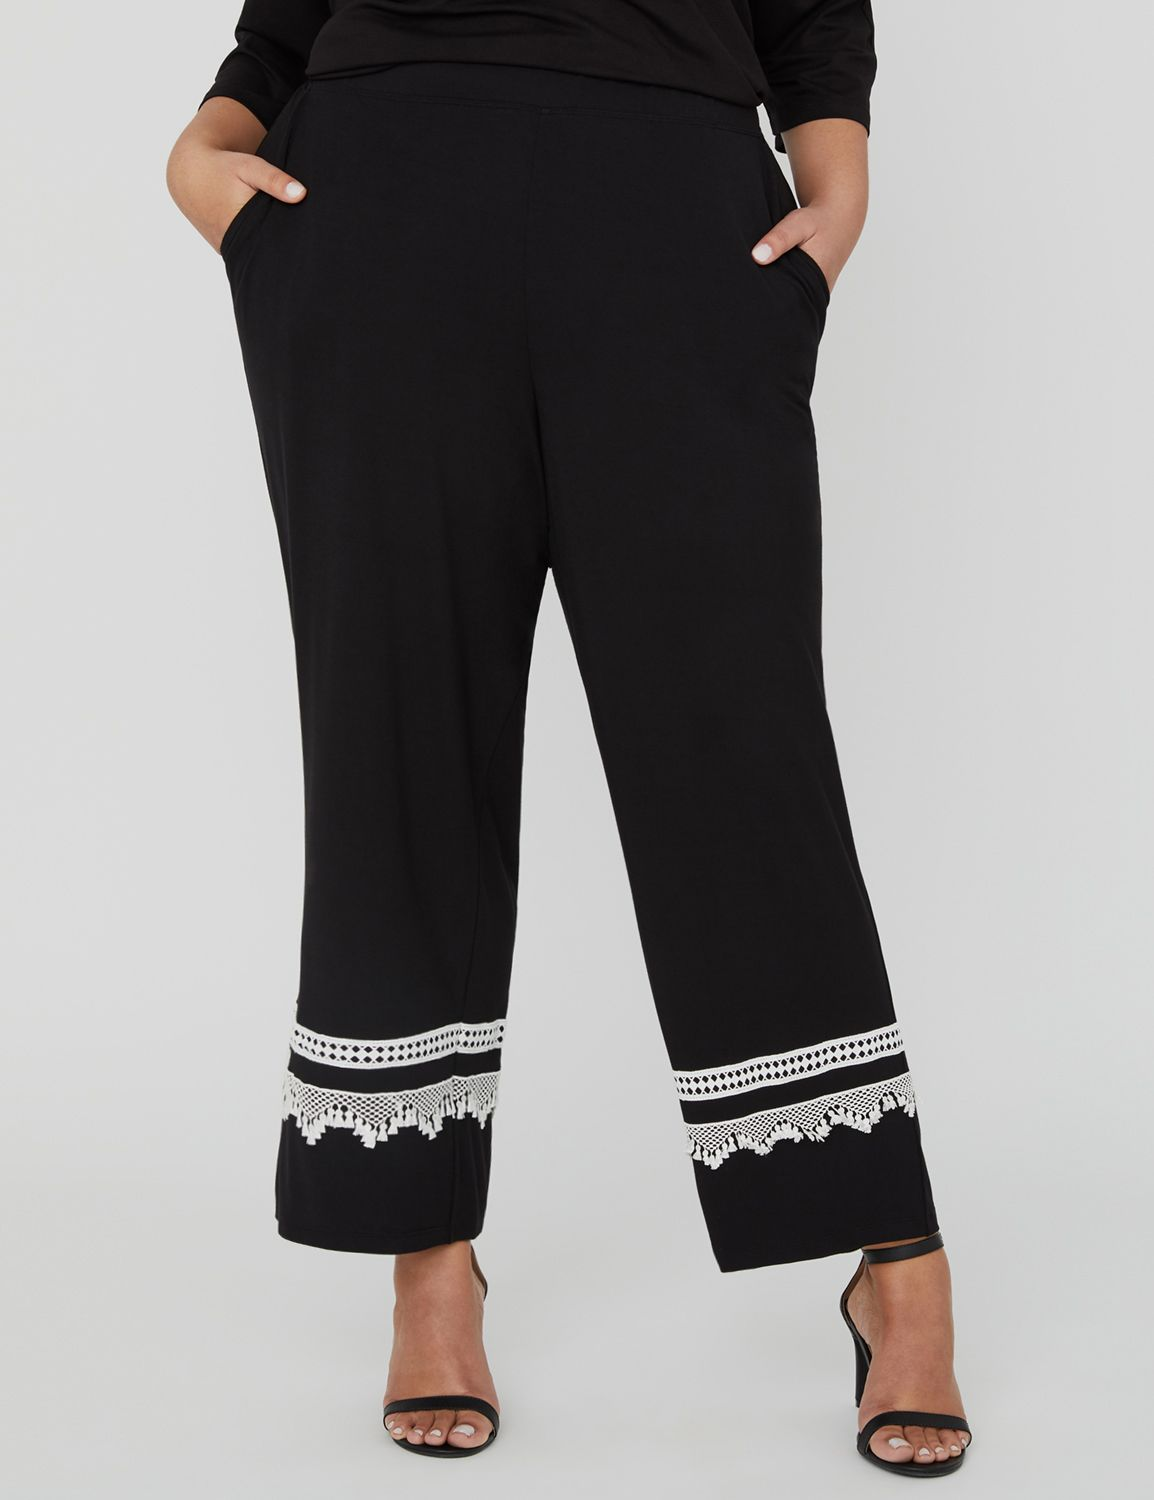 AnyWear Reverie Straight-Leg Crop Pant 1090084 Anywear Rayon Span Straight MP-300105238